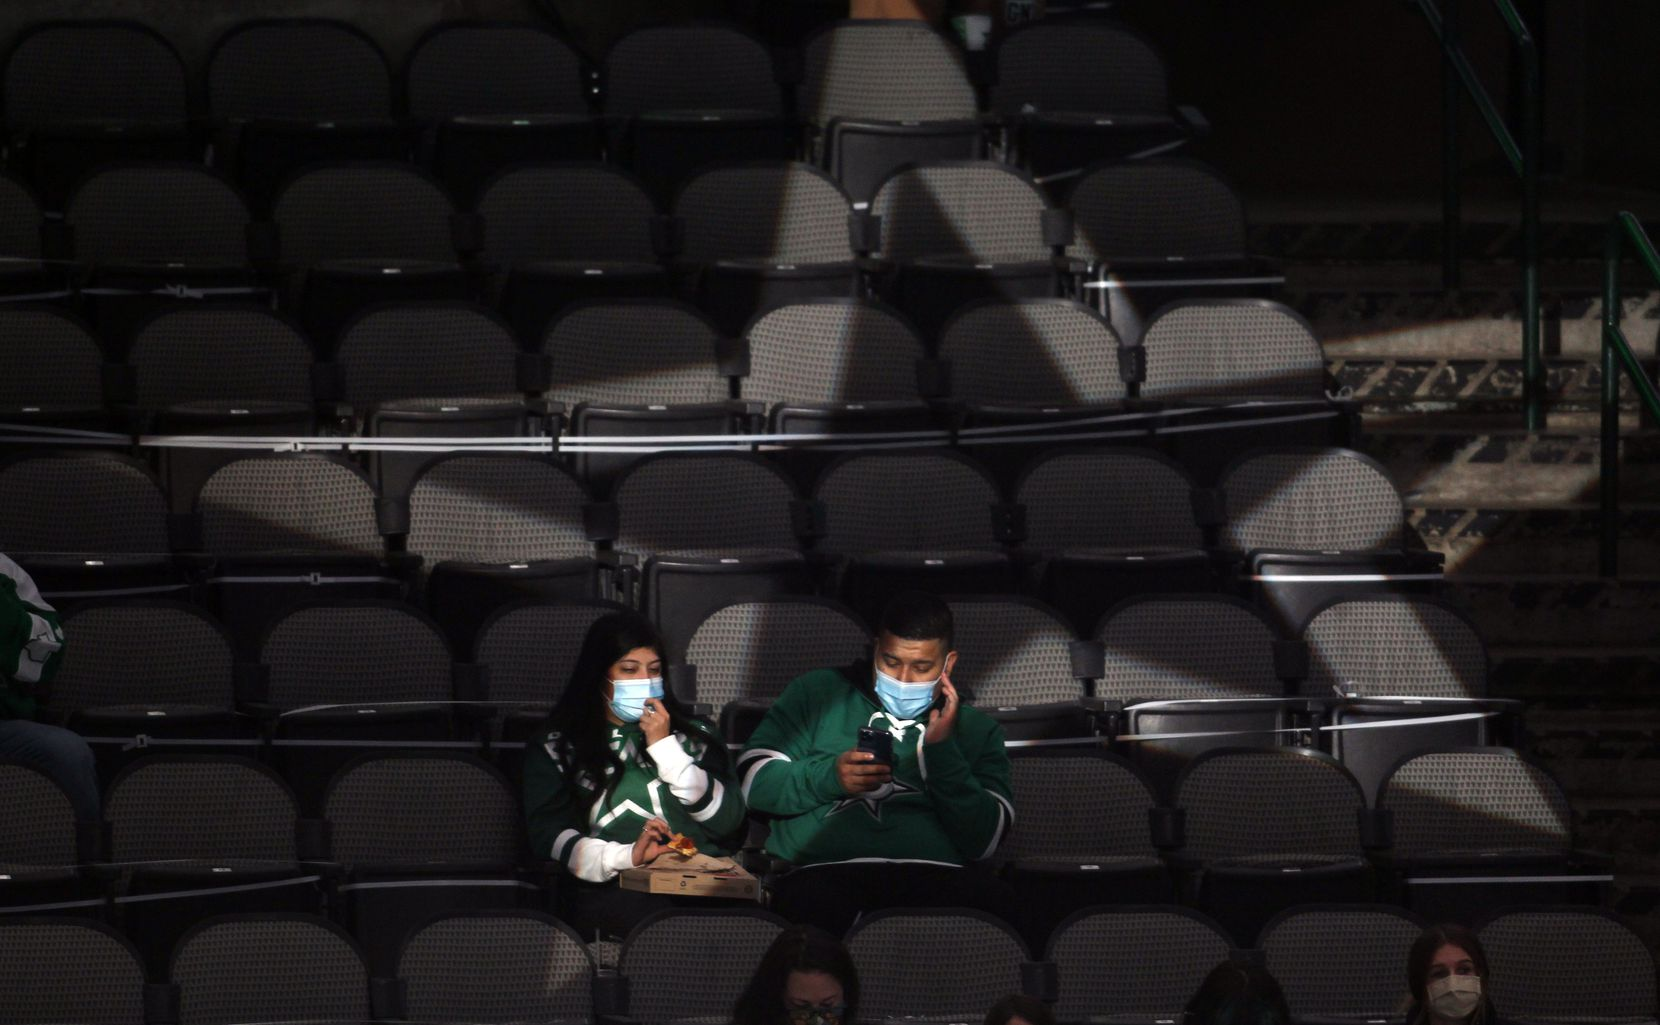 A couple of Dallas Stars fans are illuminated and framed by an illuminated star passing through the stands prior to the start of the Stars versus Nashville Predators contest. The two teams played their NHL game at the American Airlines Center in Dallas on January 24 , 2021. (Steve Hamm/ Special Contributor)